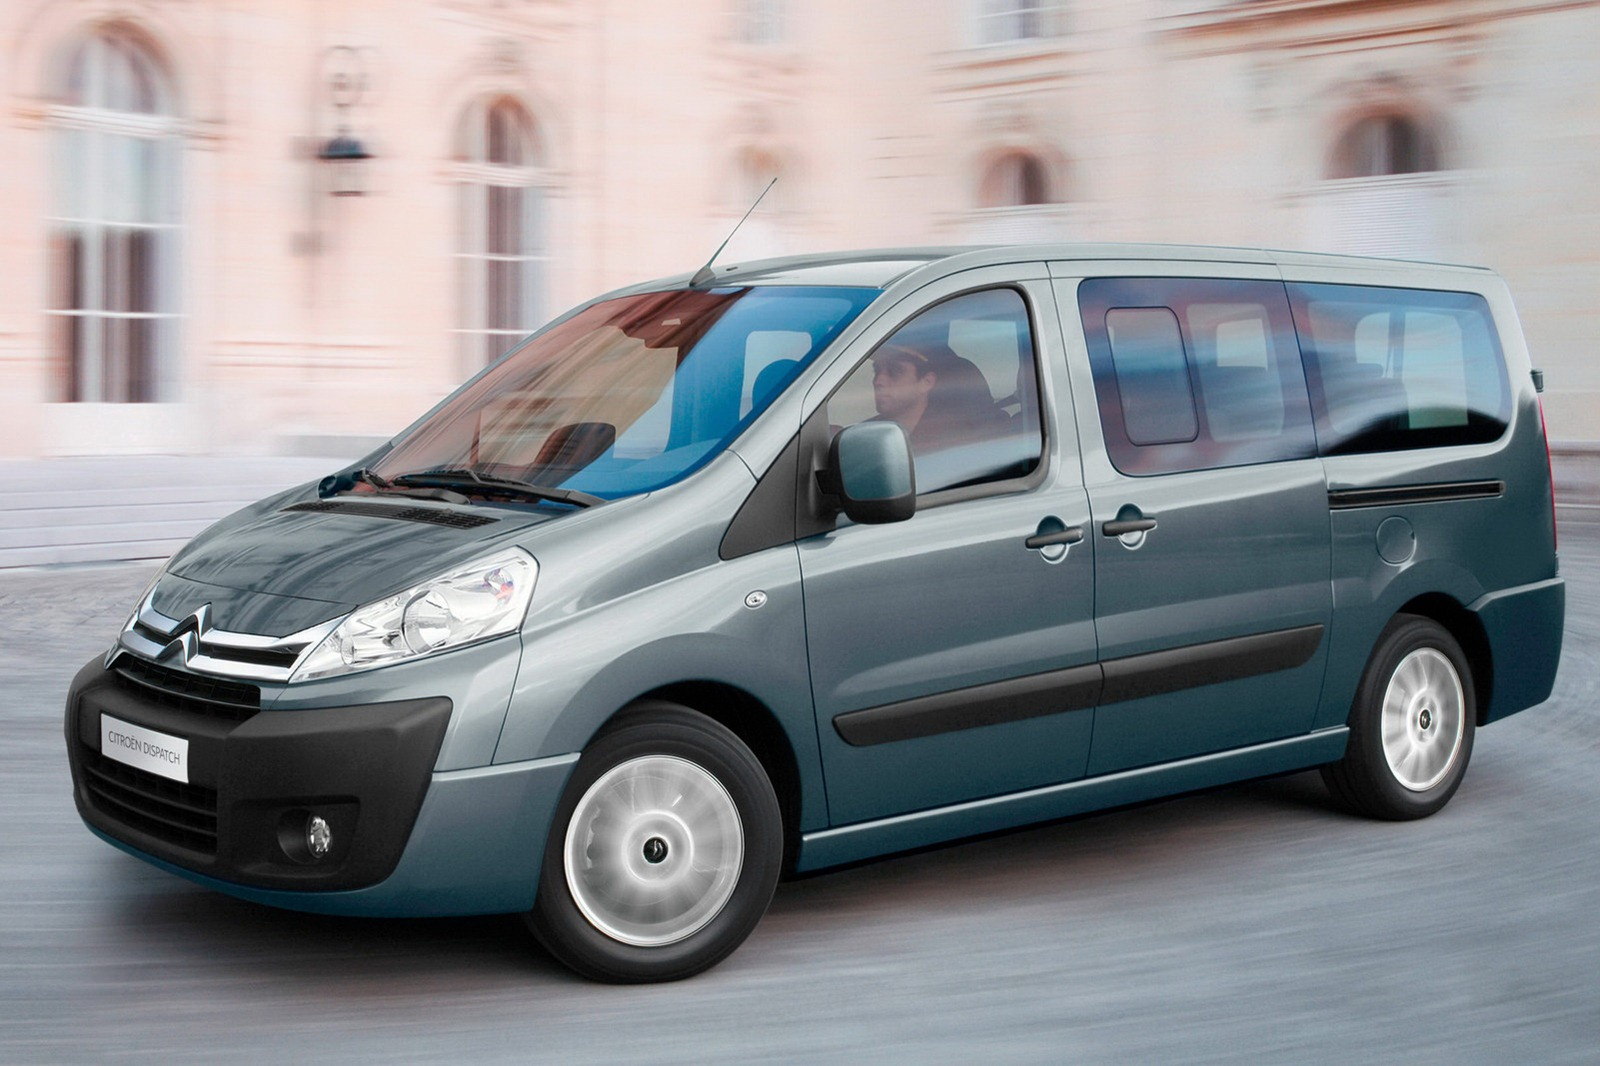 2012 Citroen Berlingo #15